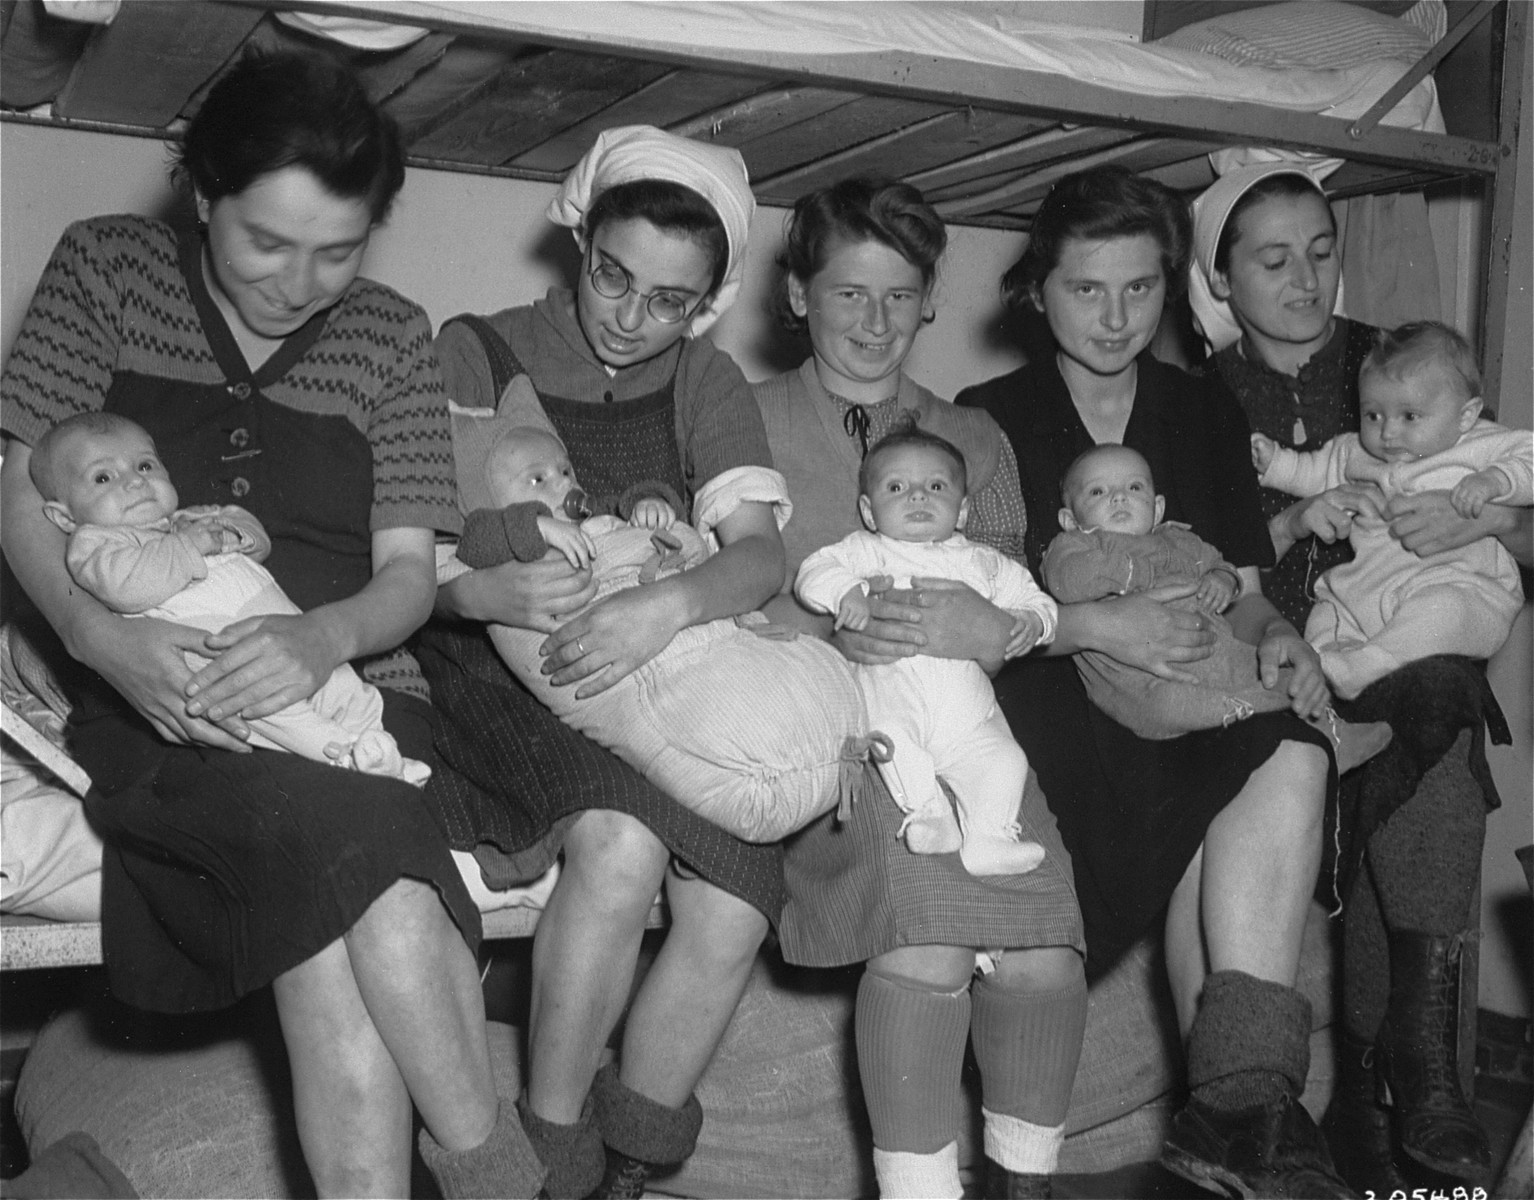 Group portrait of five Hungarian Jewish mothers and their infants in a Dachau sub-camp in Germany.  Pictured from left to right are:  Ibolya Kovacs with her daughter Agnes; Suri Hirsch with her son Yossi; Eva Schwartz with her daughter Maria; Magda Fenyvesi with her daughter Judit; and Boeszi Legmann with her son Gyuri.  Not pictured are: Dora Loewy and her daughter Szuszi; and Miriam Schwarcz Rosenthal and her son Laci (Leslie).